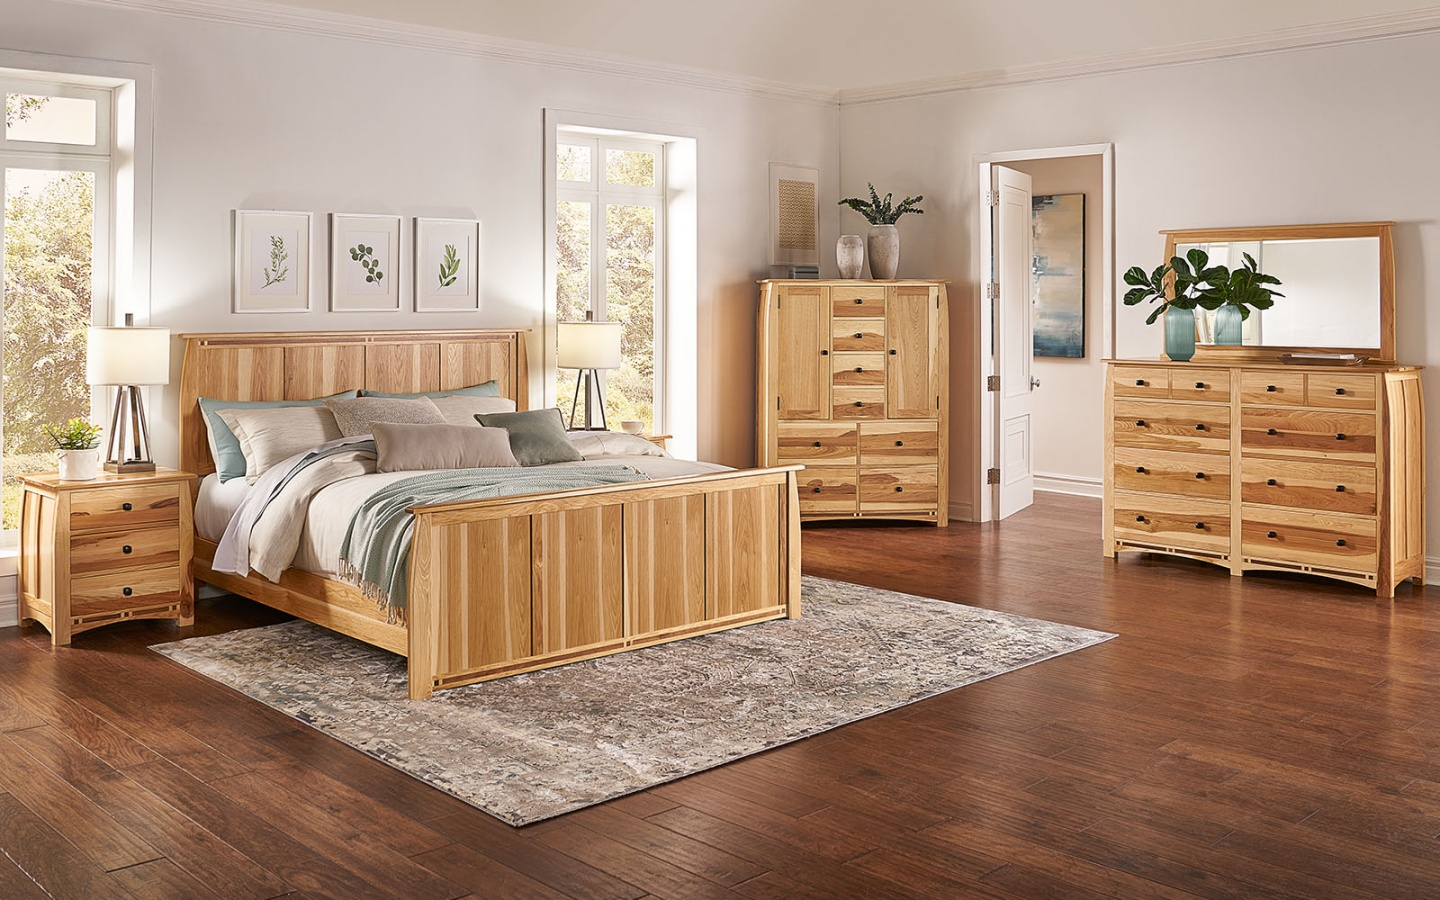 Adamstown Panel Bed